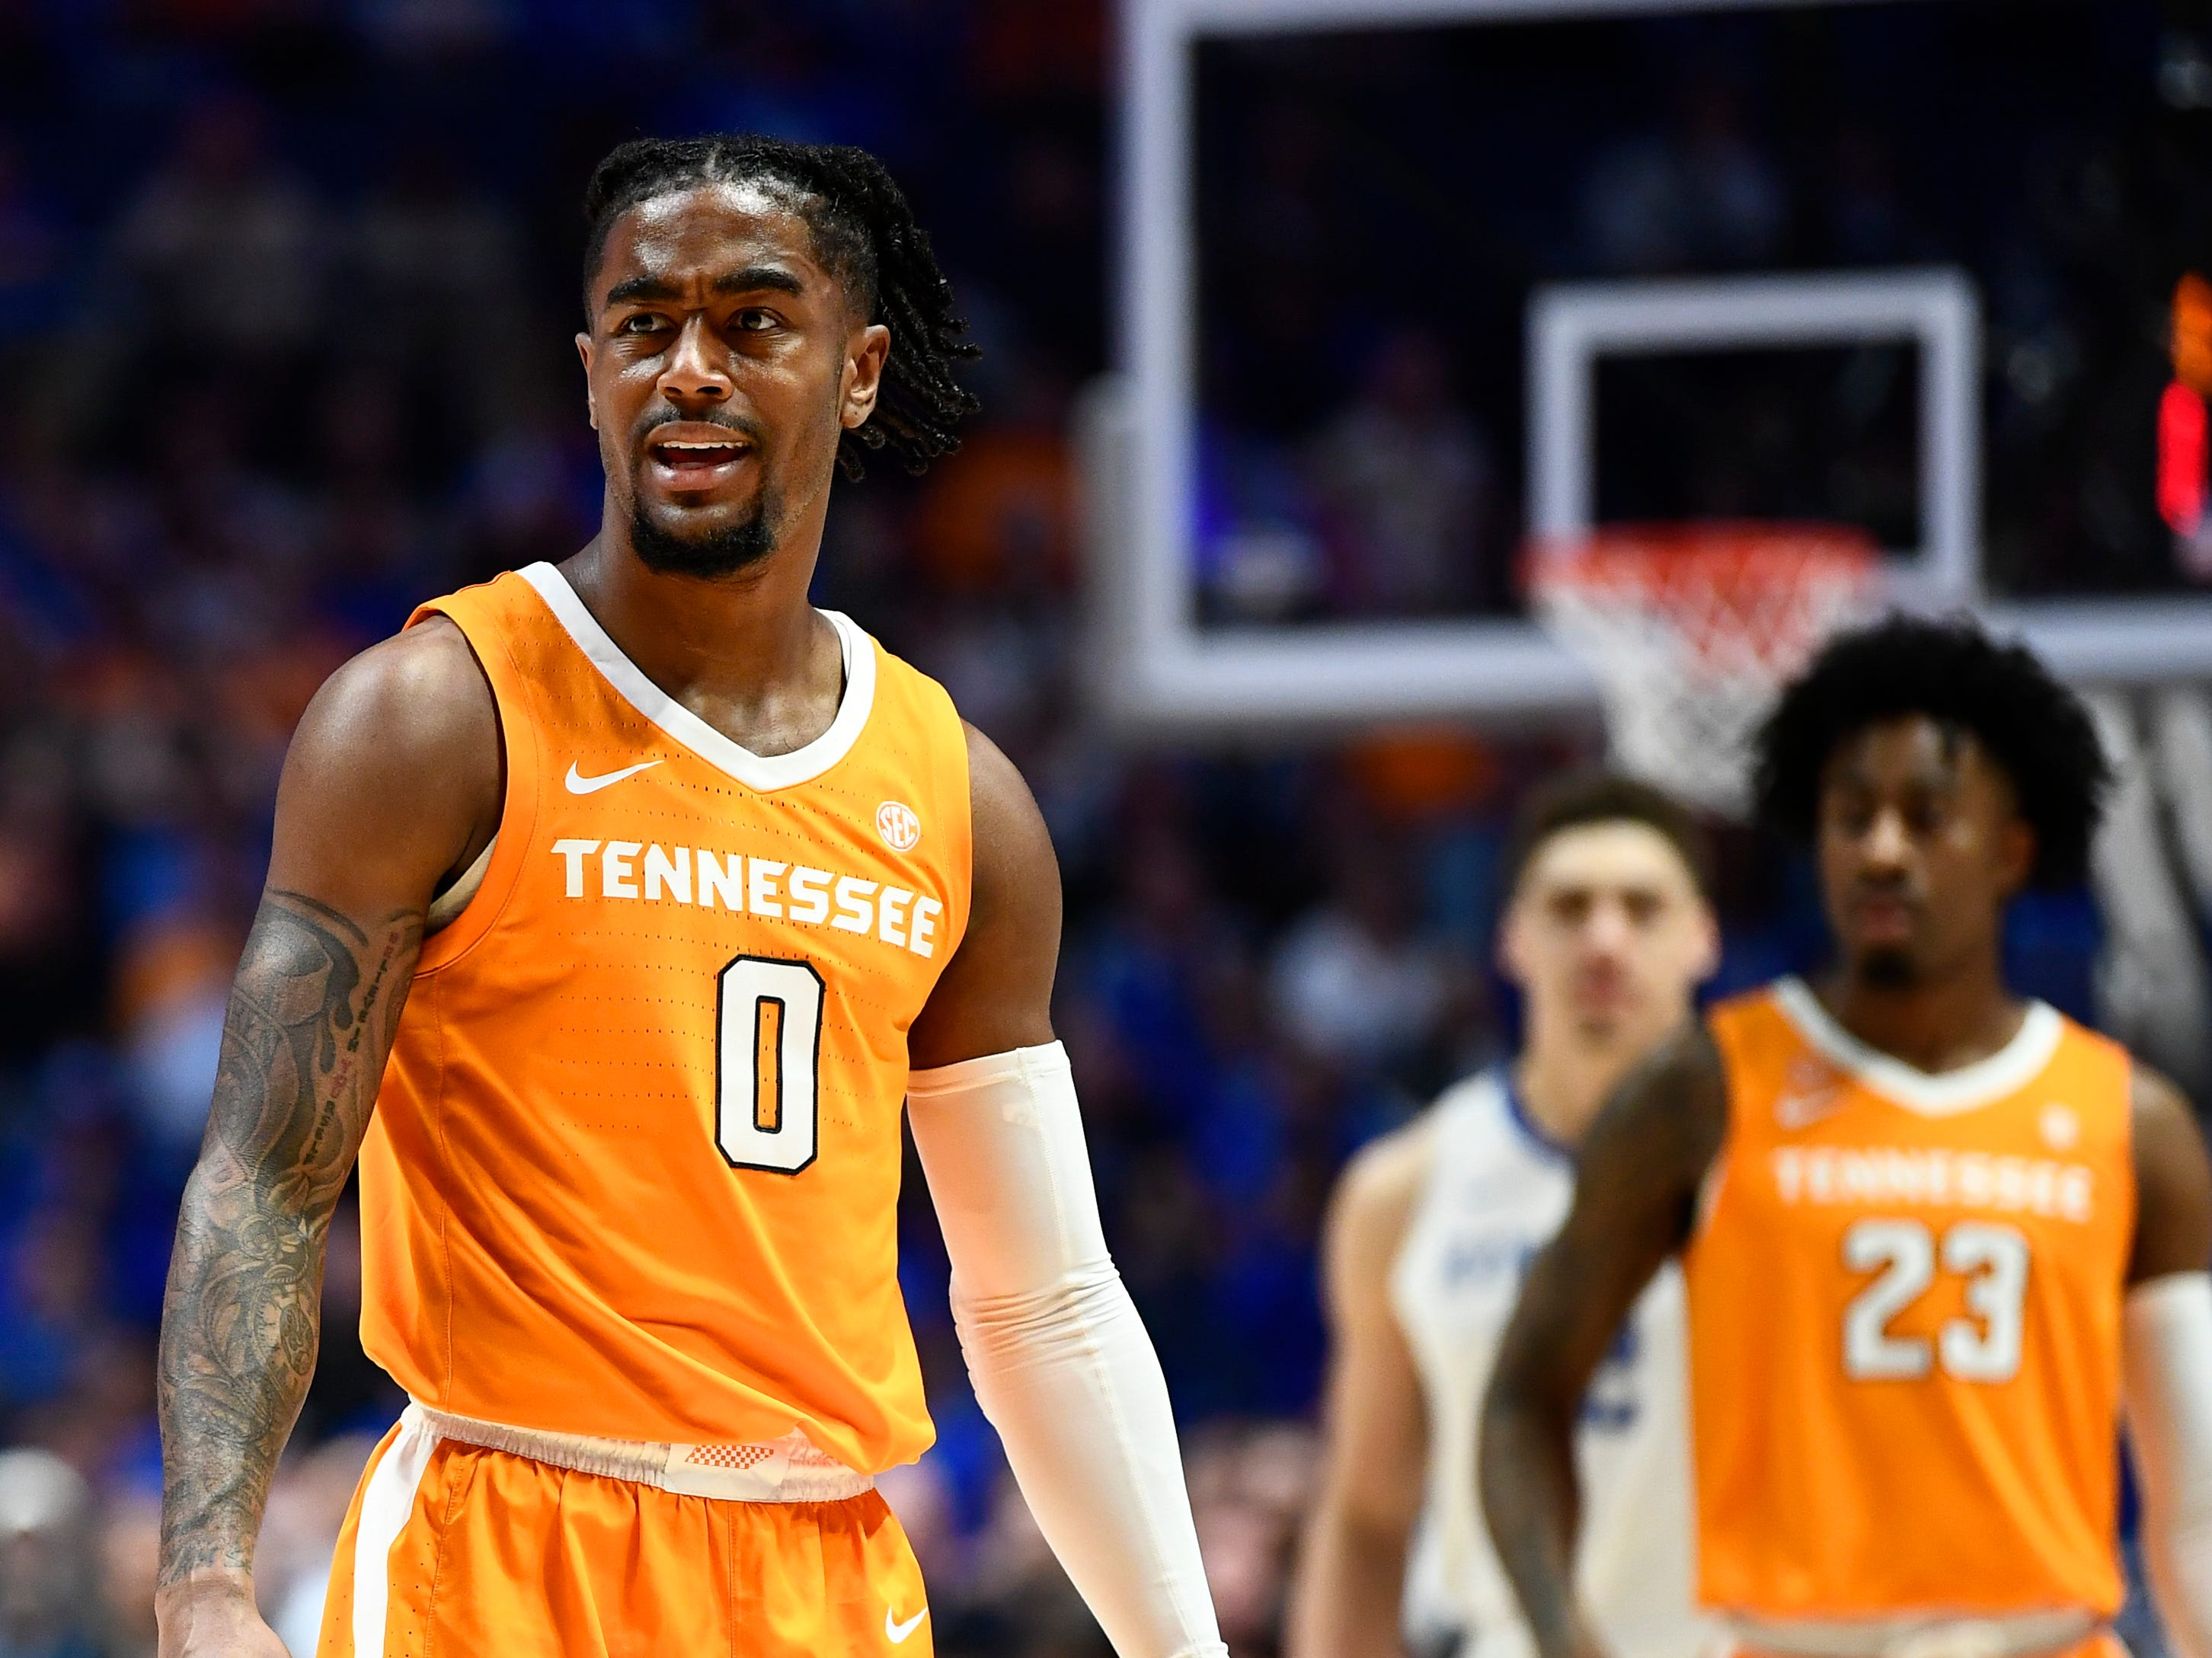 Tennessee guard Jordan Bone (0) reacts to a call made against Tennessee during the first half of the SEC Men's Basketball Tournament semifinal game against Kentucky at Bridgestone Arena in Nashville, Tenn., Saturday, March 16, 2019.